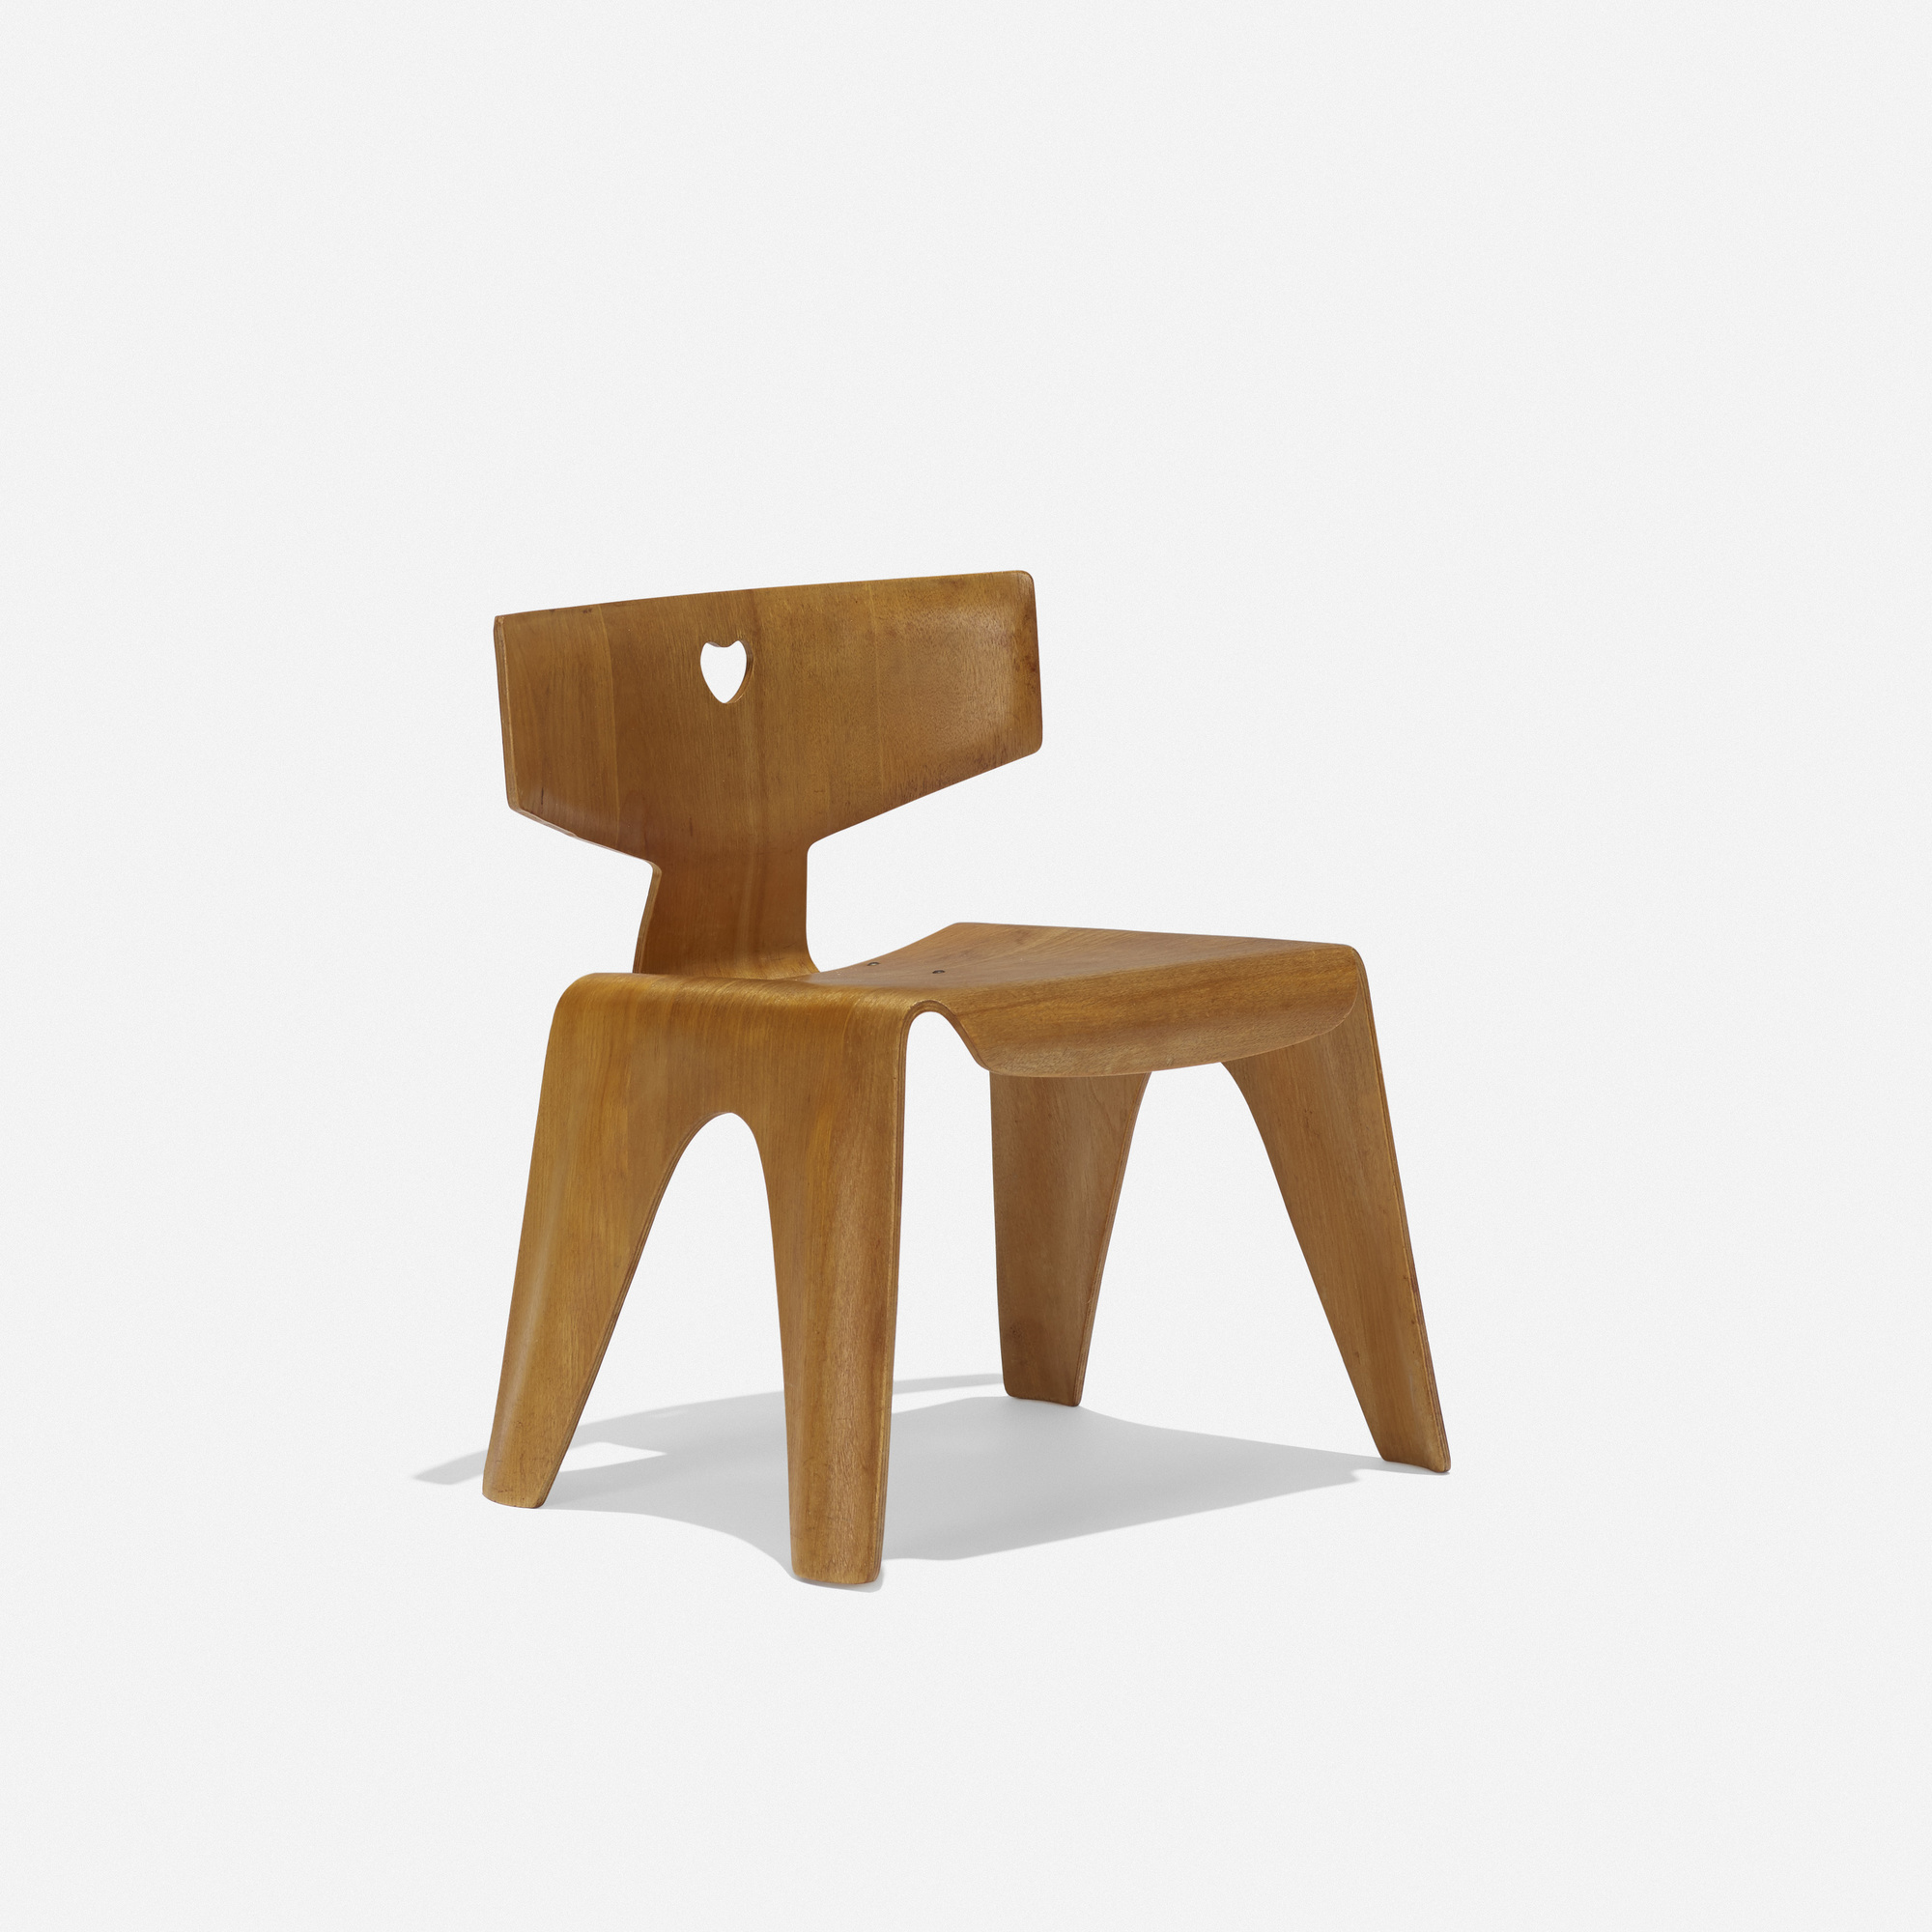 138: Charles and Ray Eames / child's chair (1 of 2)